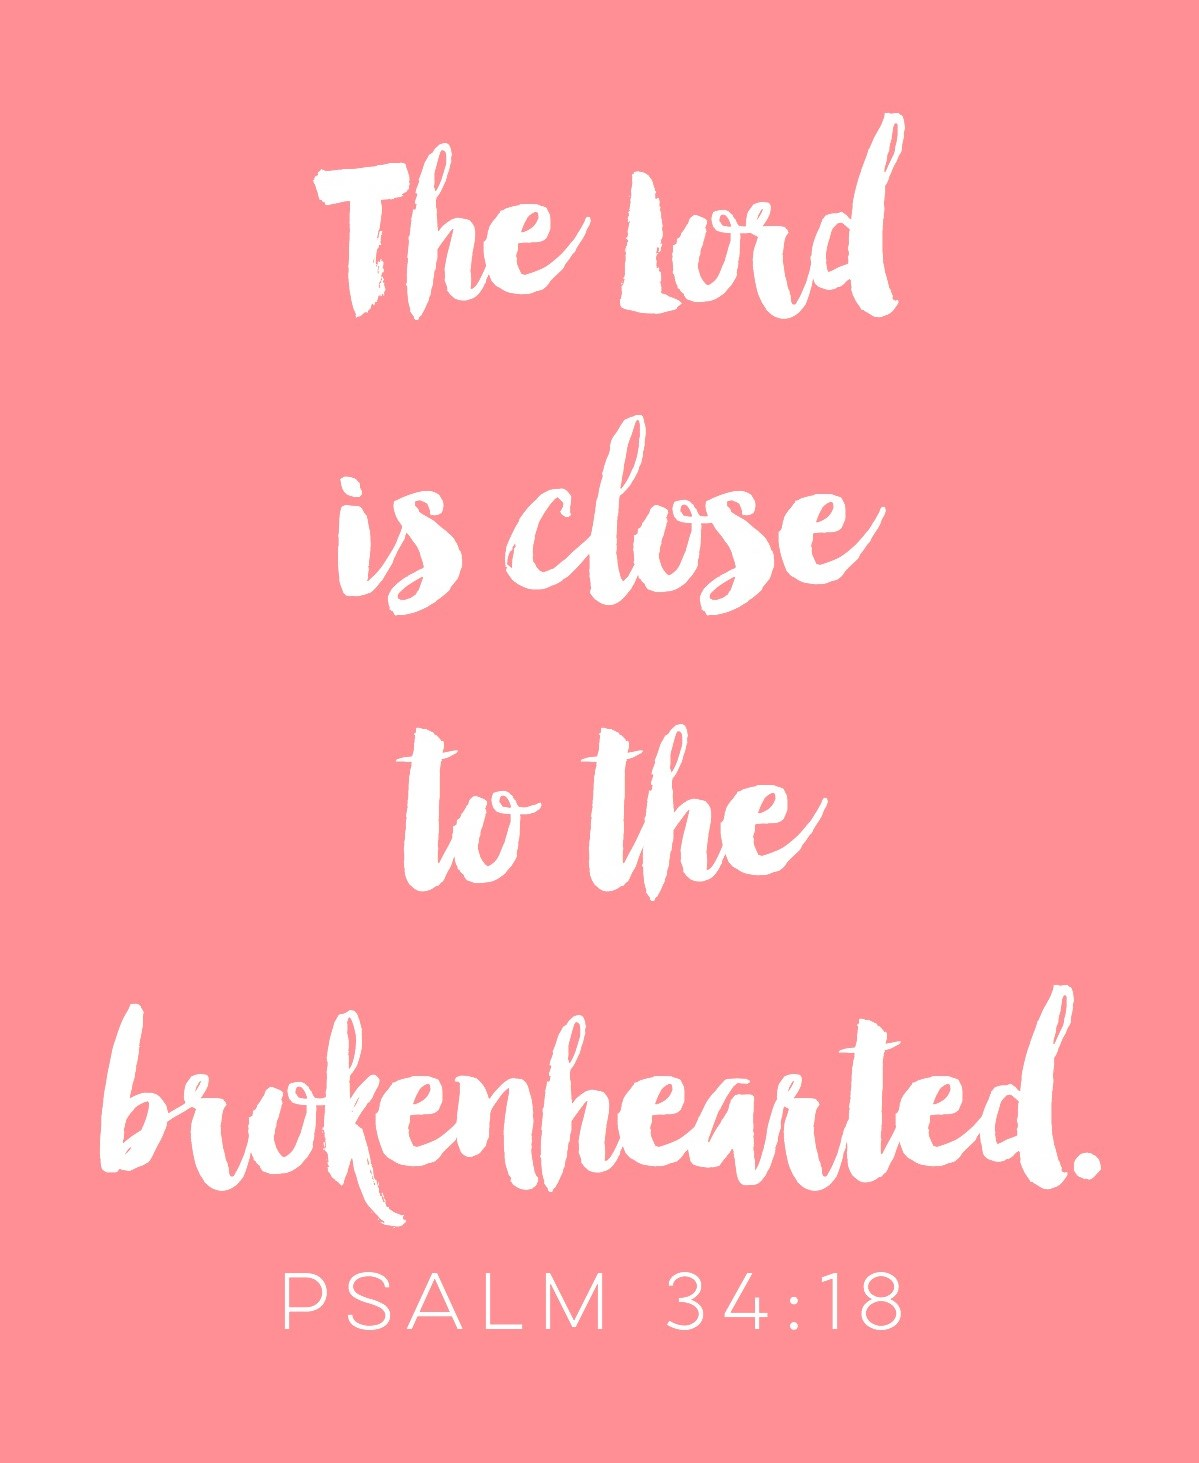 Scriptures-for-the-Brokenhearted-MercyIsNew.com_2